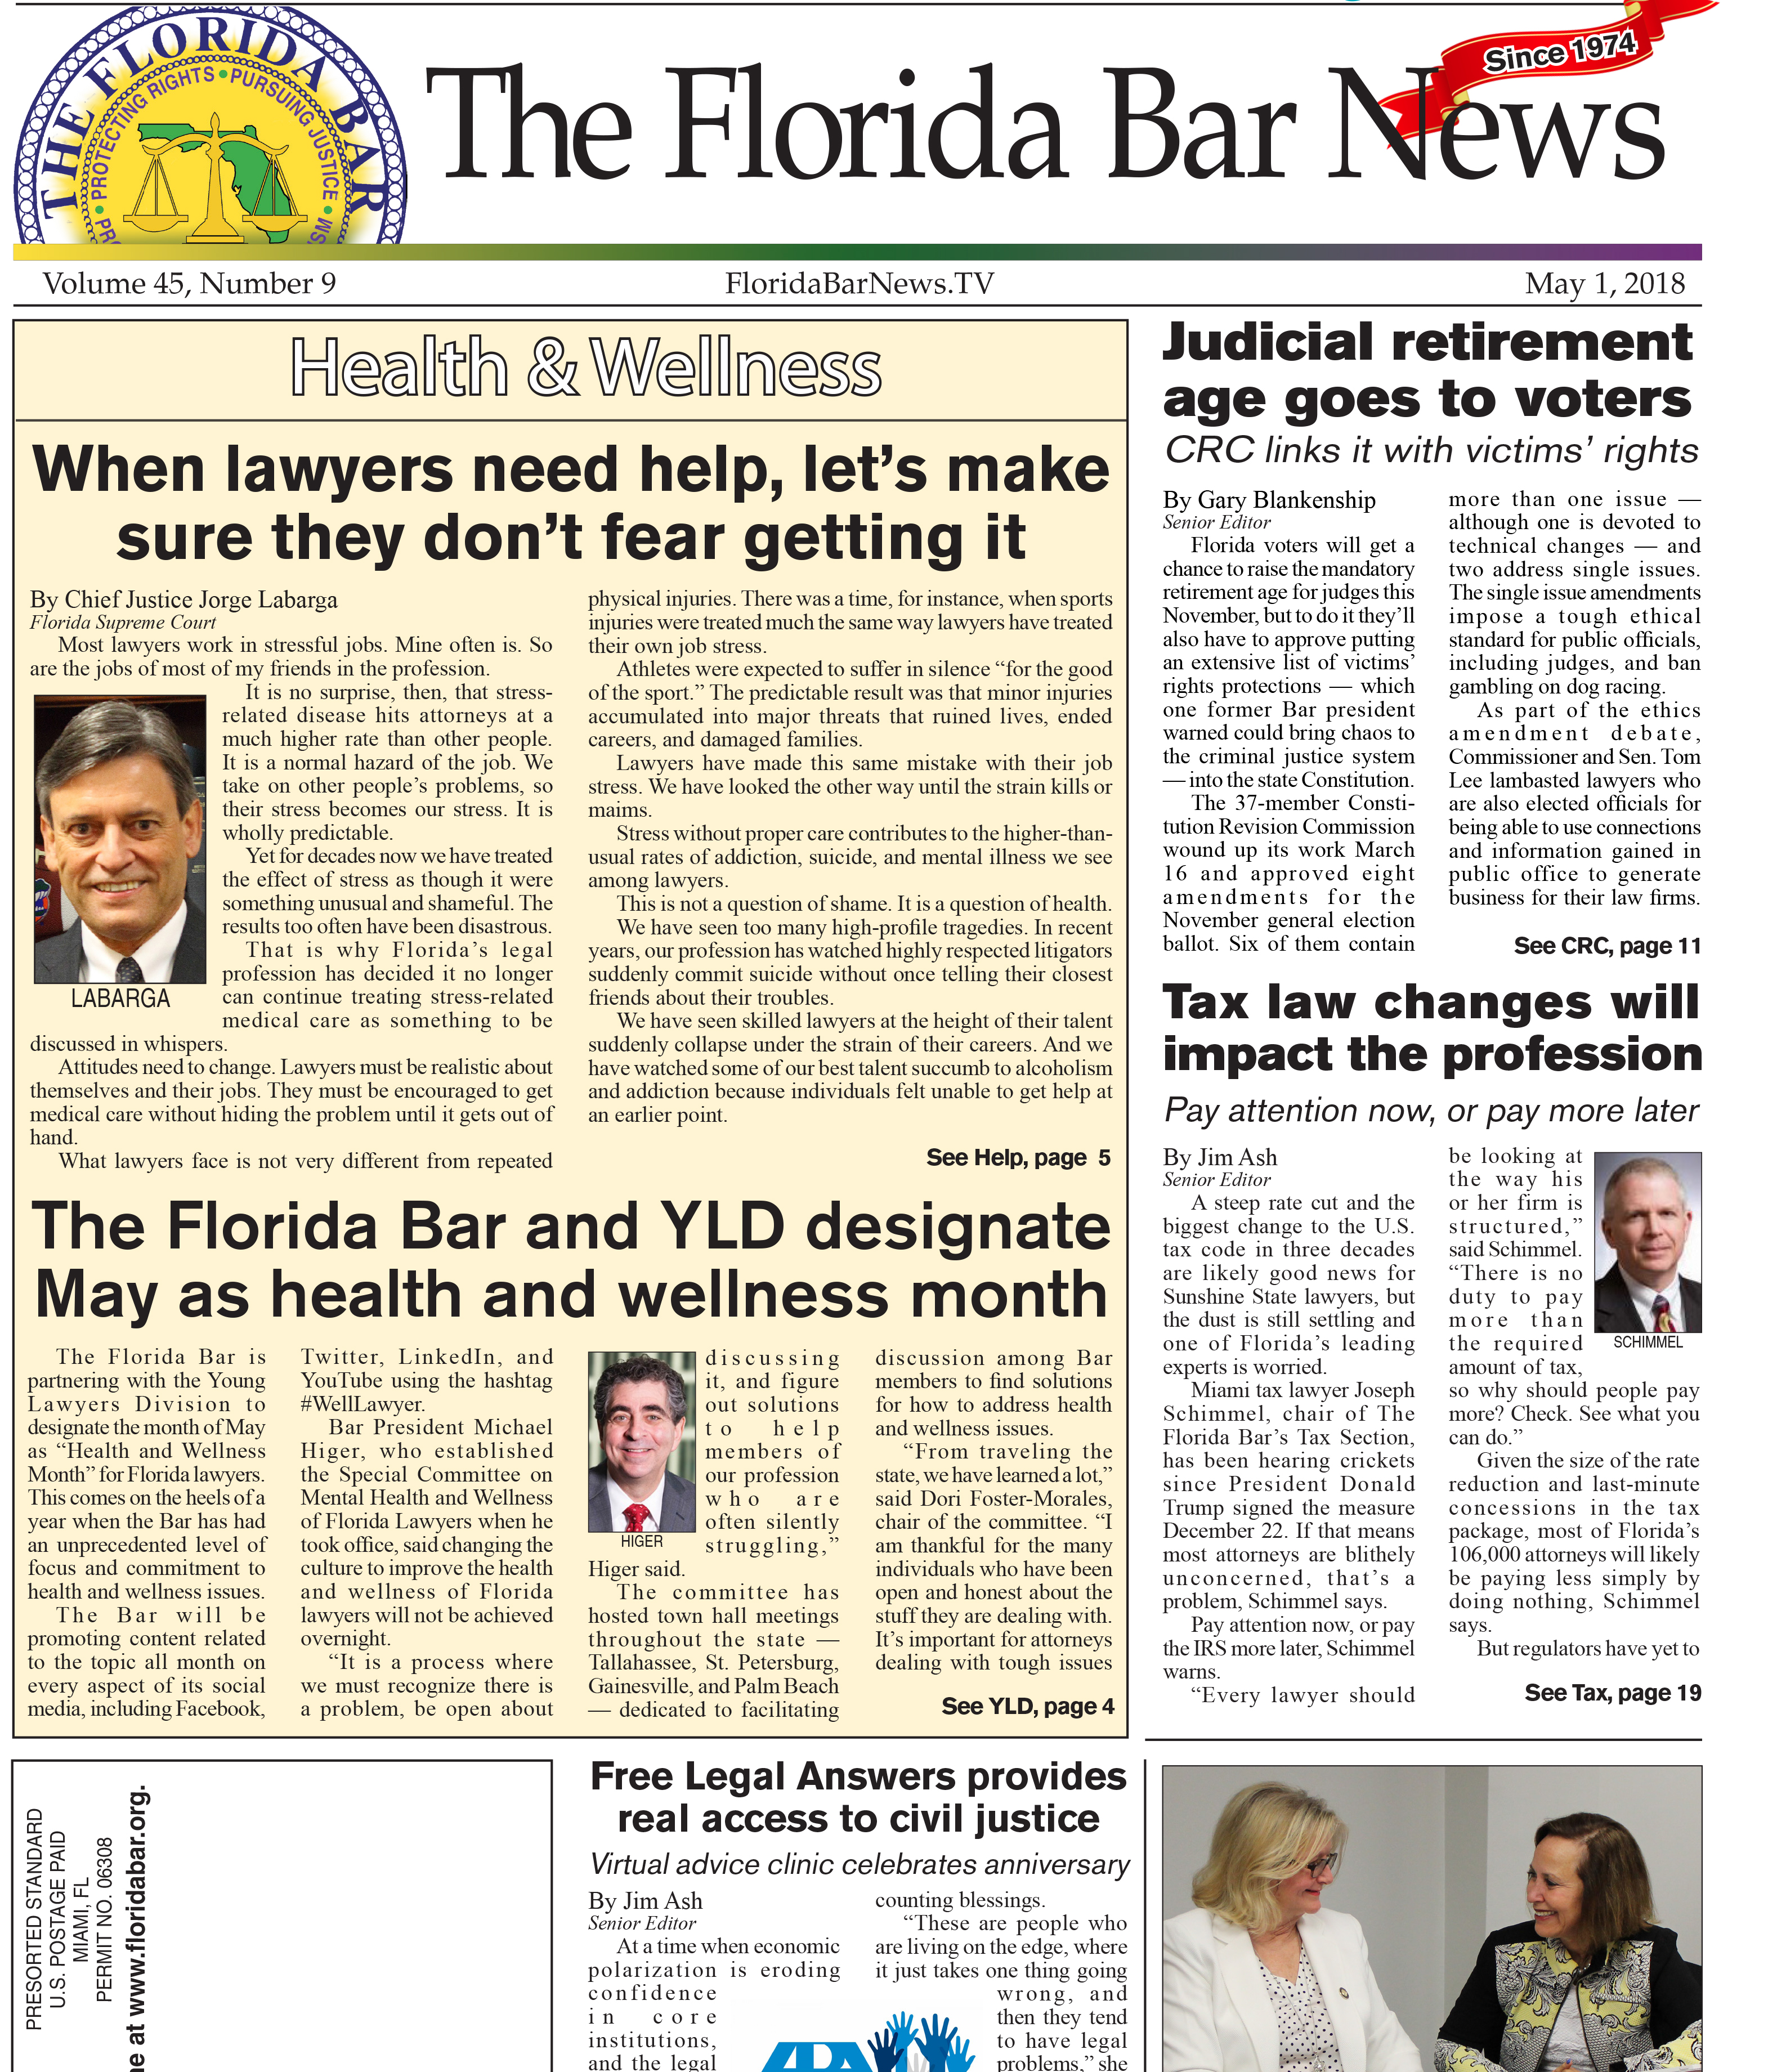 The May 1 Florida Bar News has the latest on Chief Justice Labarga's support for lawyer health and wellness, tax law changes and the judicial retirement age.